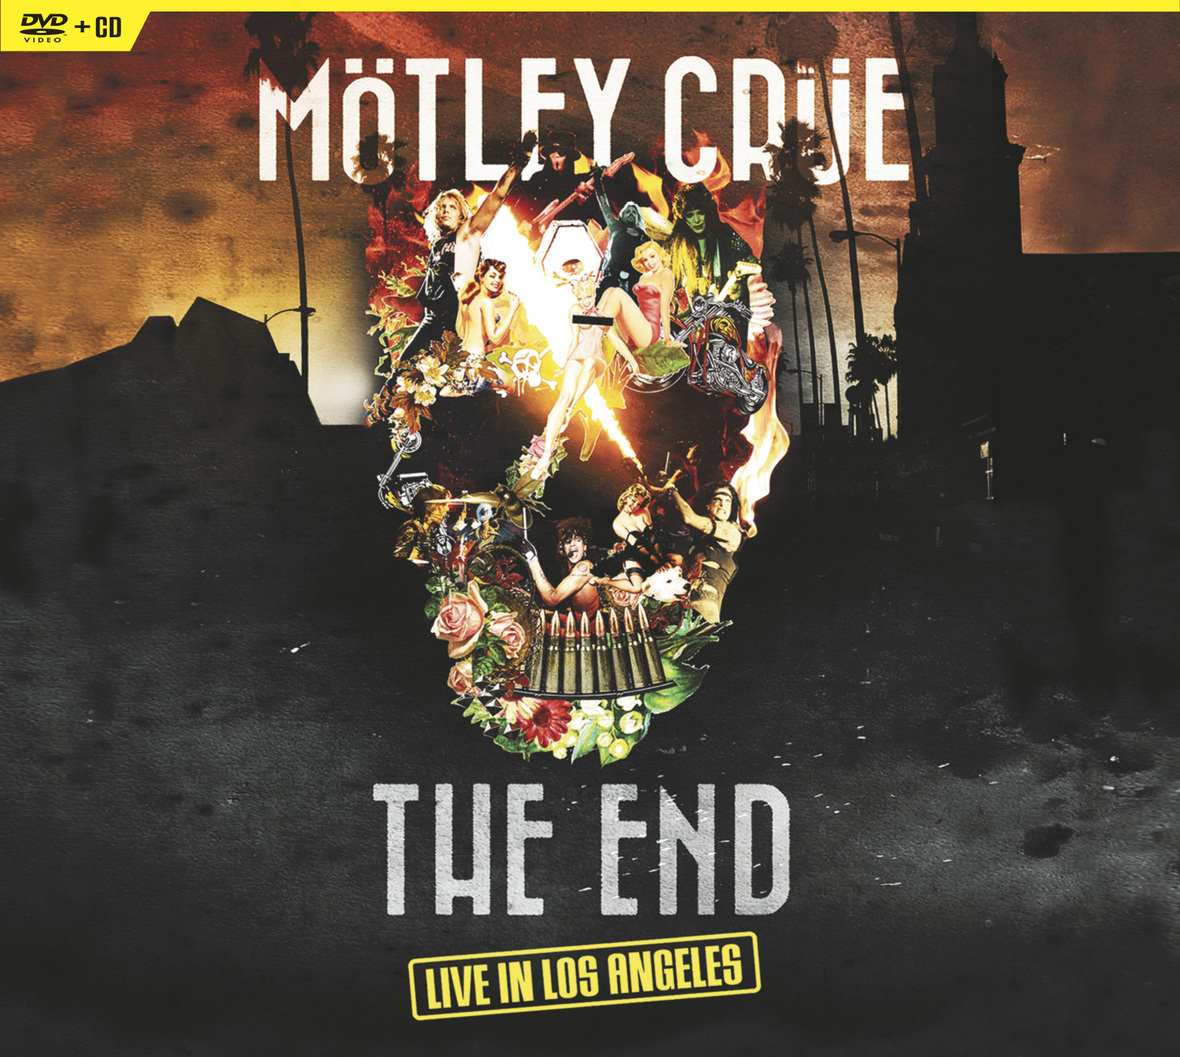 motley-crue-the-end-dvd